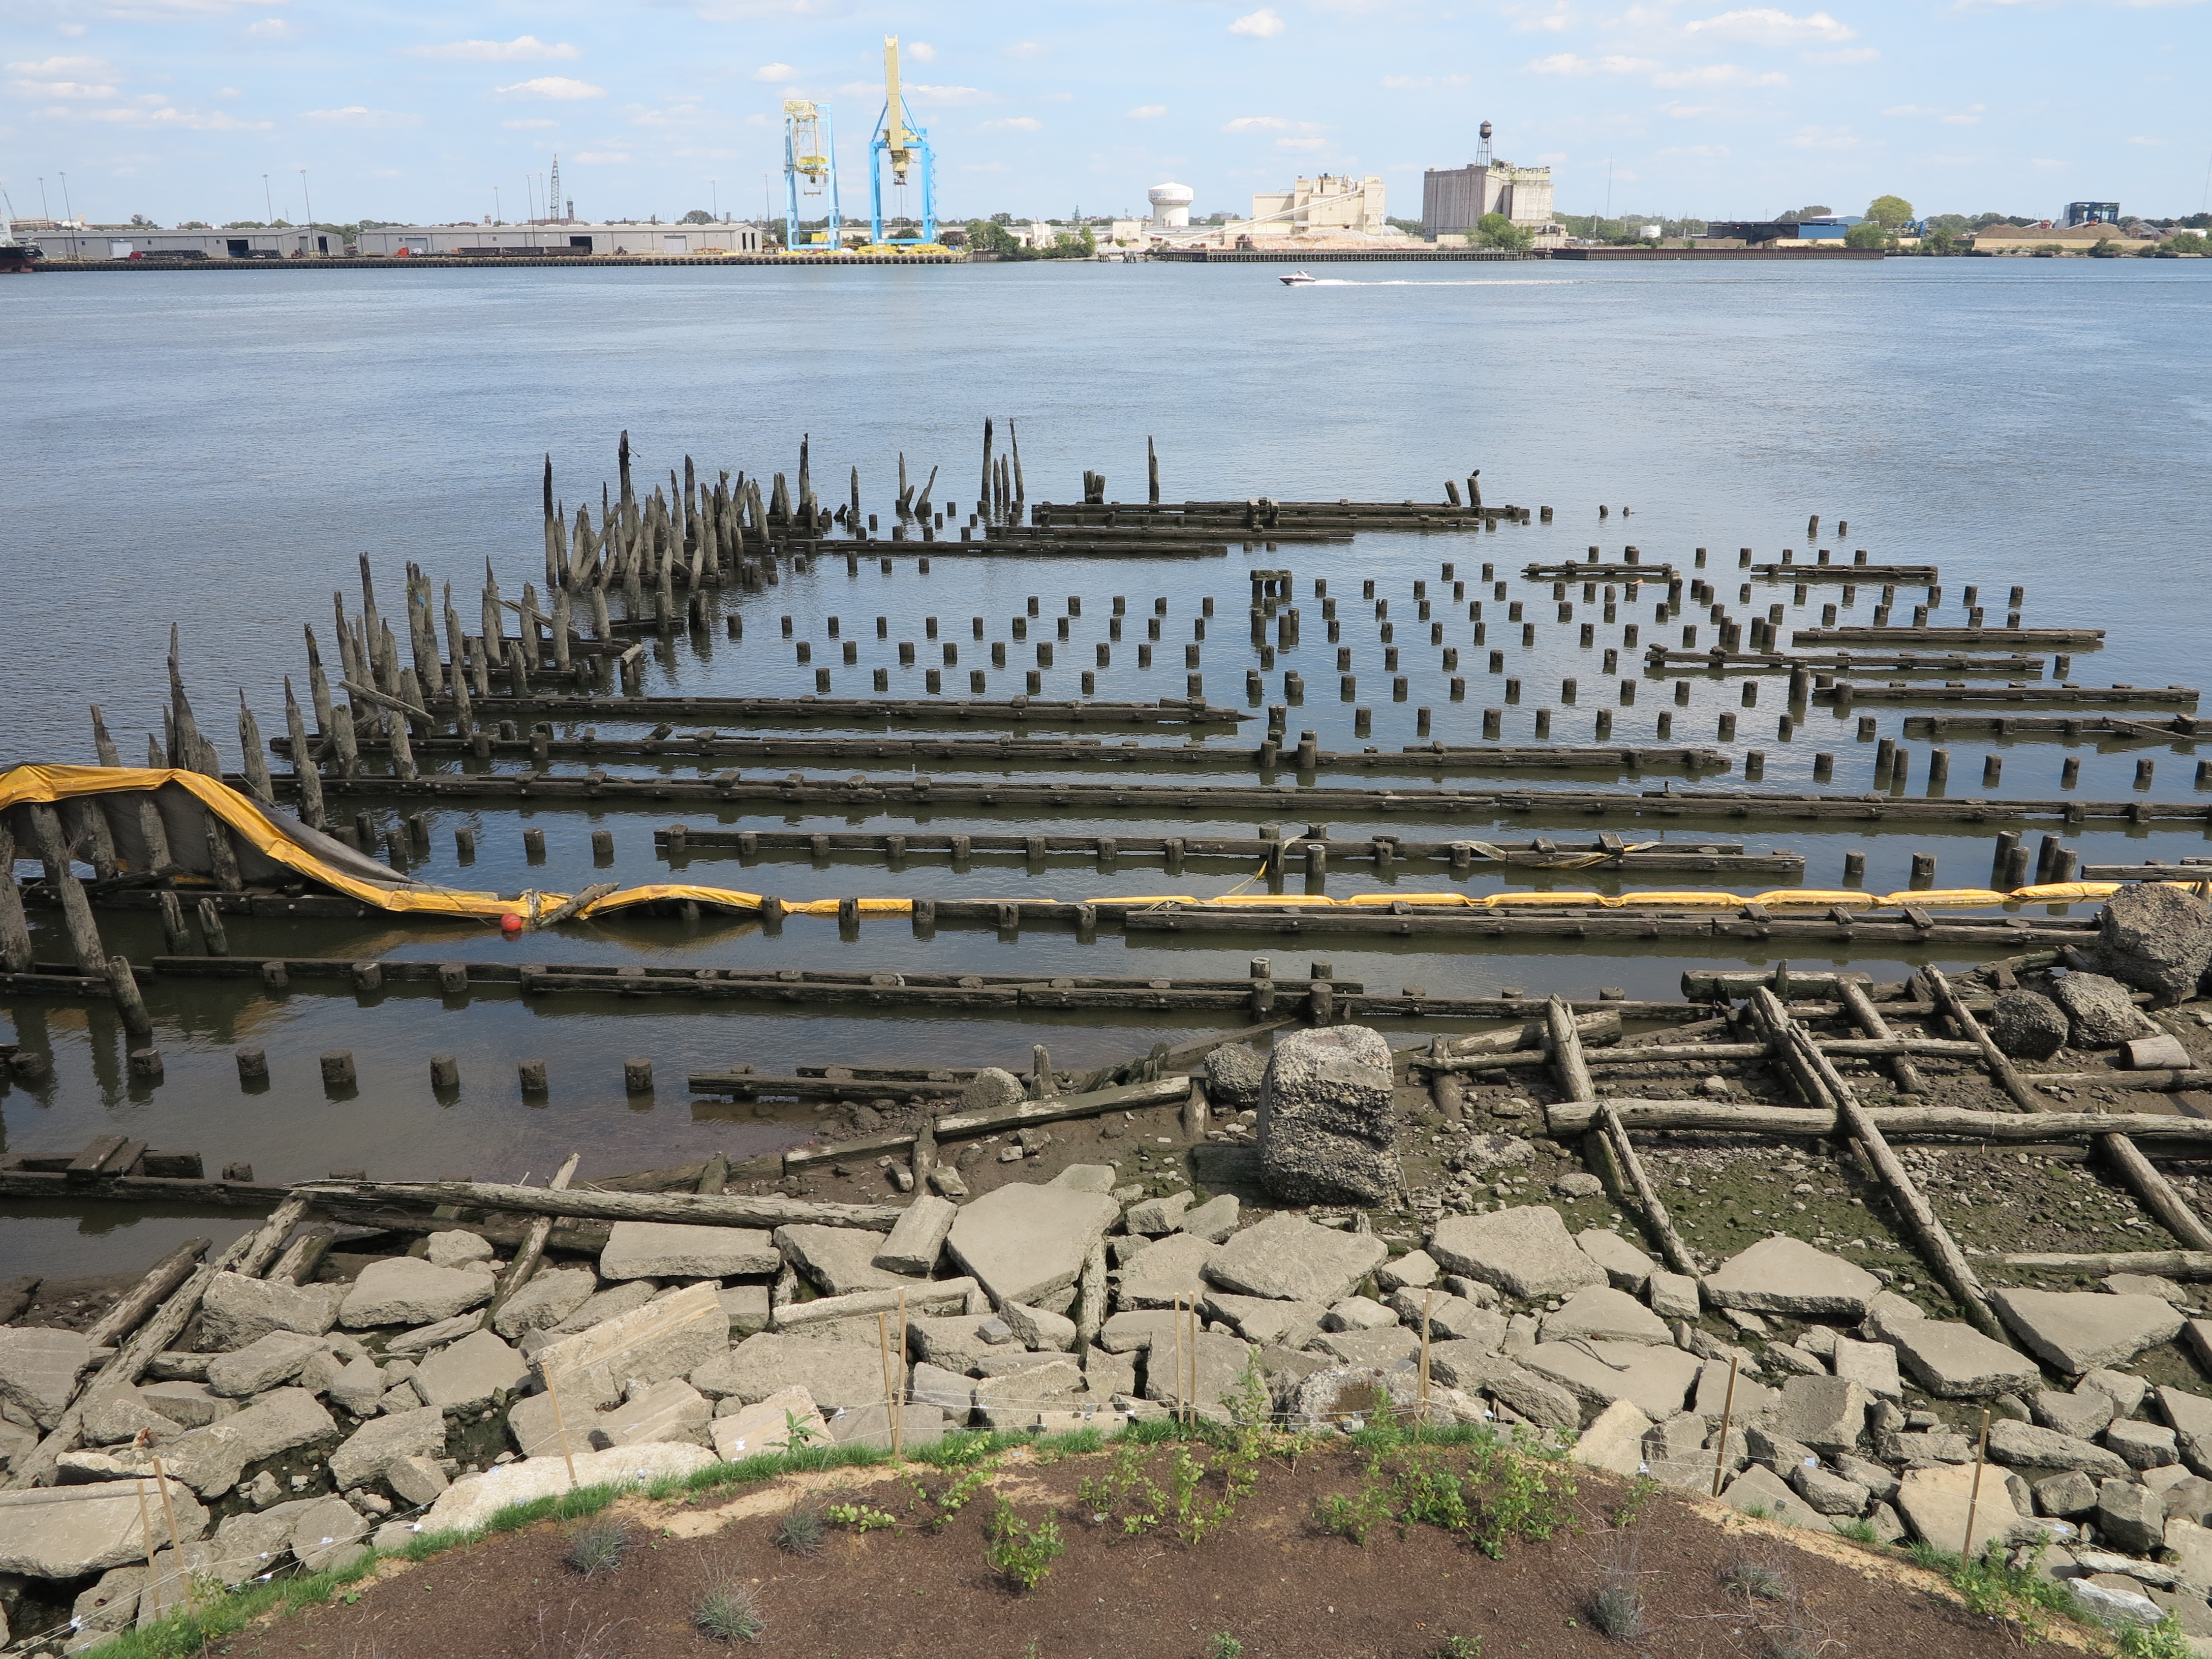 Old pilings provide wildlife habitat.